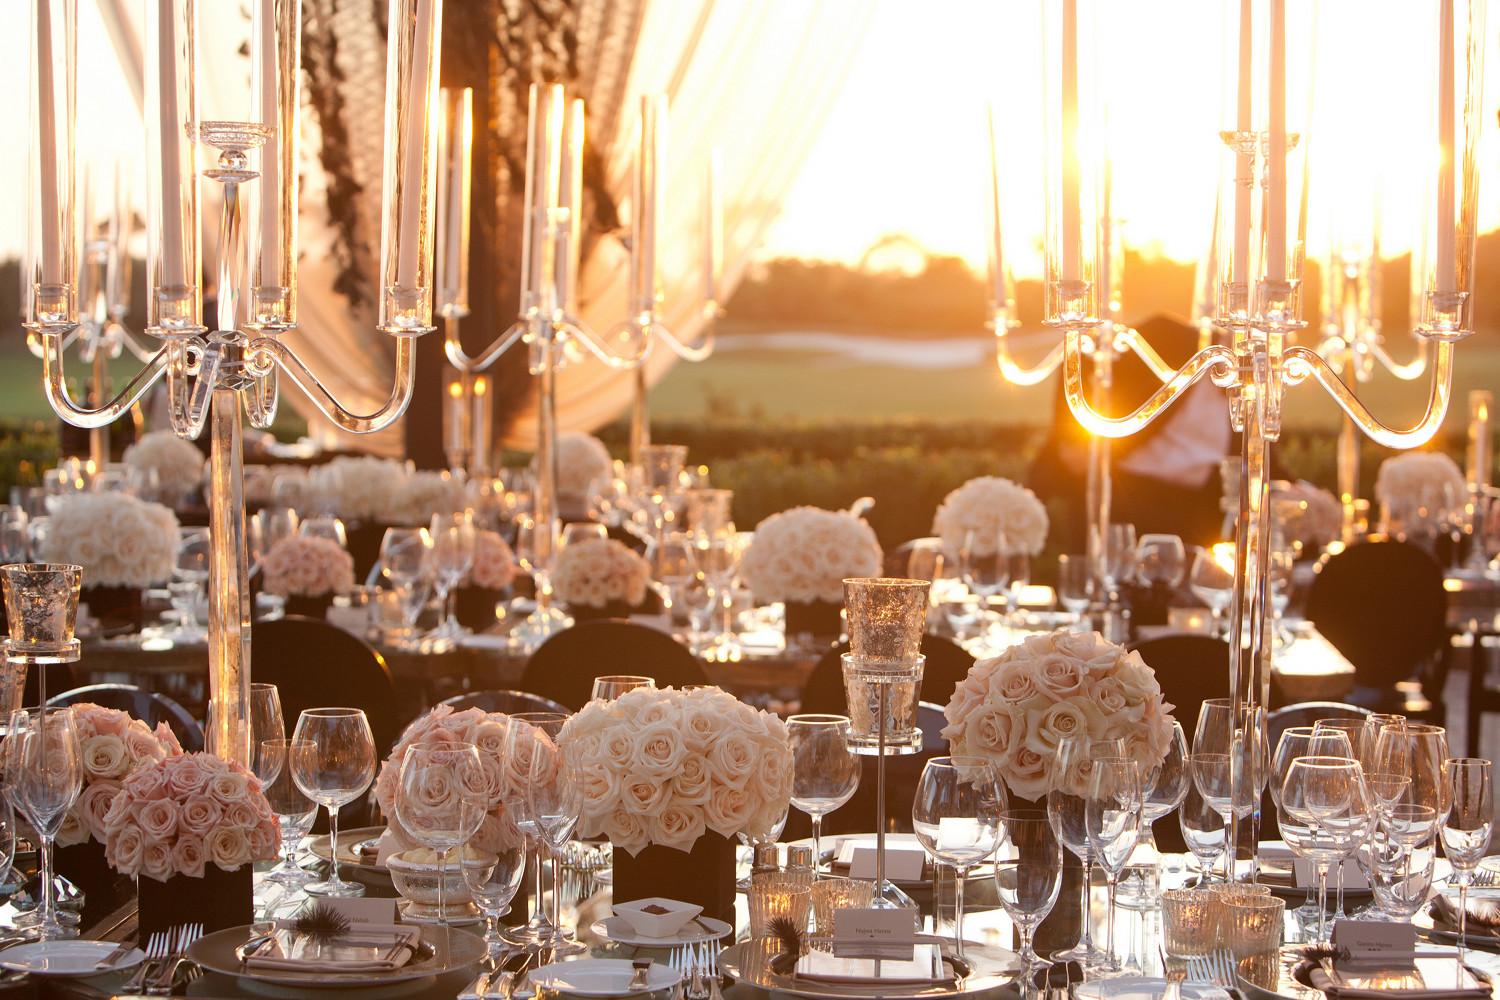 Sunset wedding reception with modern candelabras and